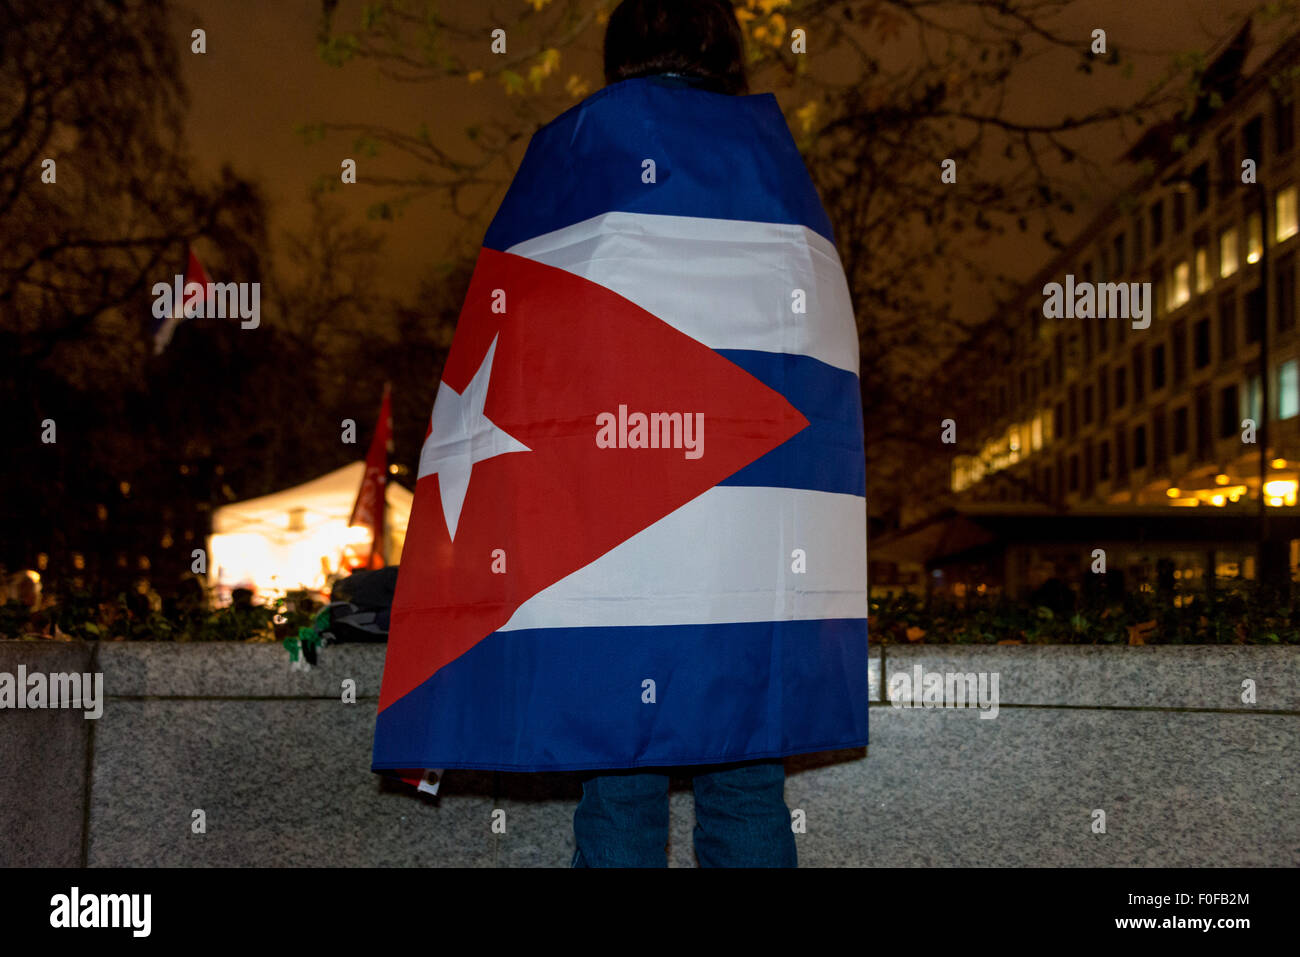 File. 14th Aug, 2015. The United States has reopened its embassy in Cuba more than 54 years after it was closed, Stock Photo